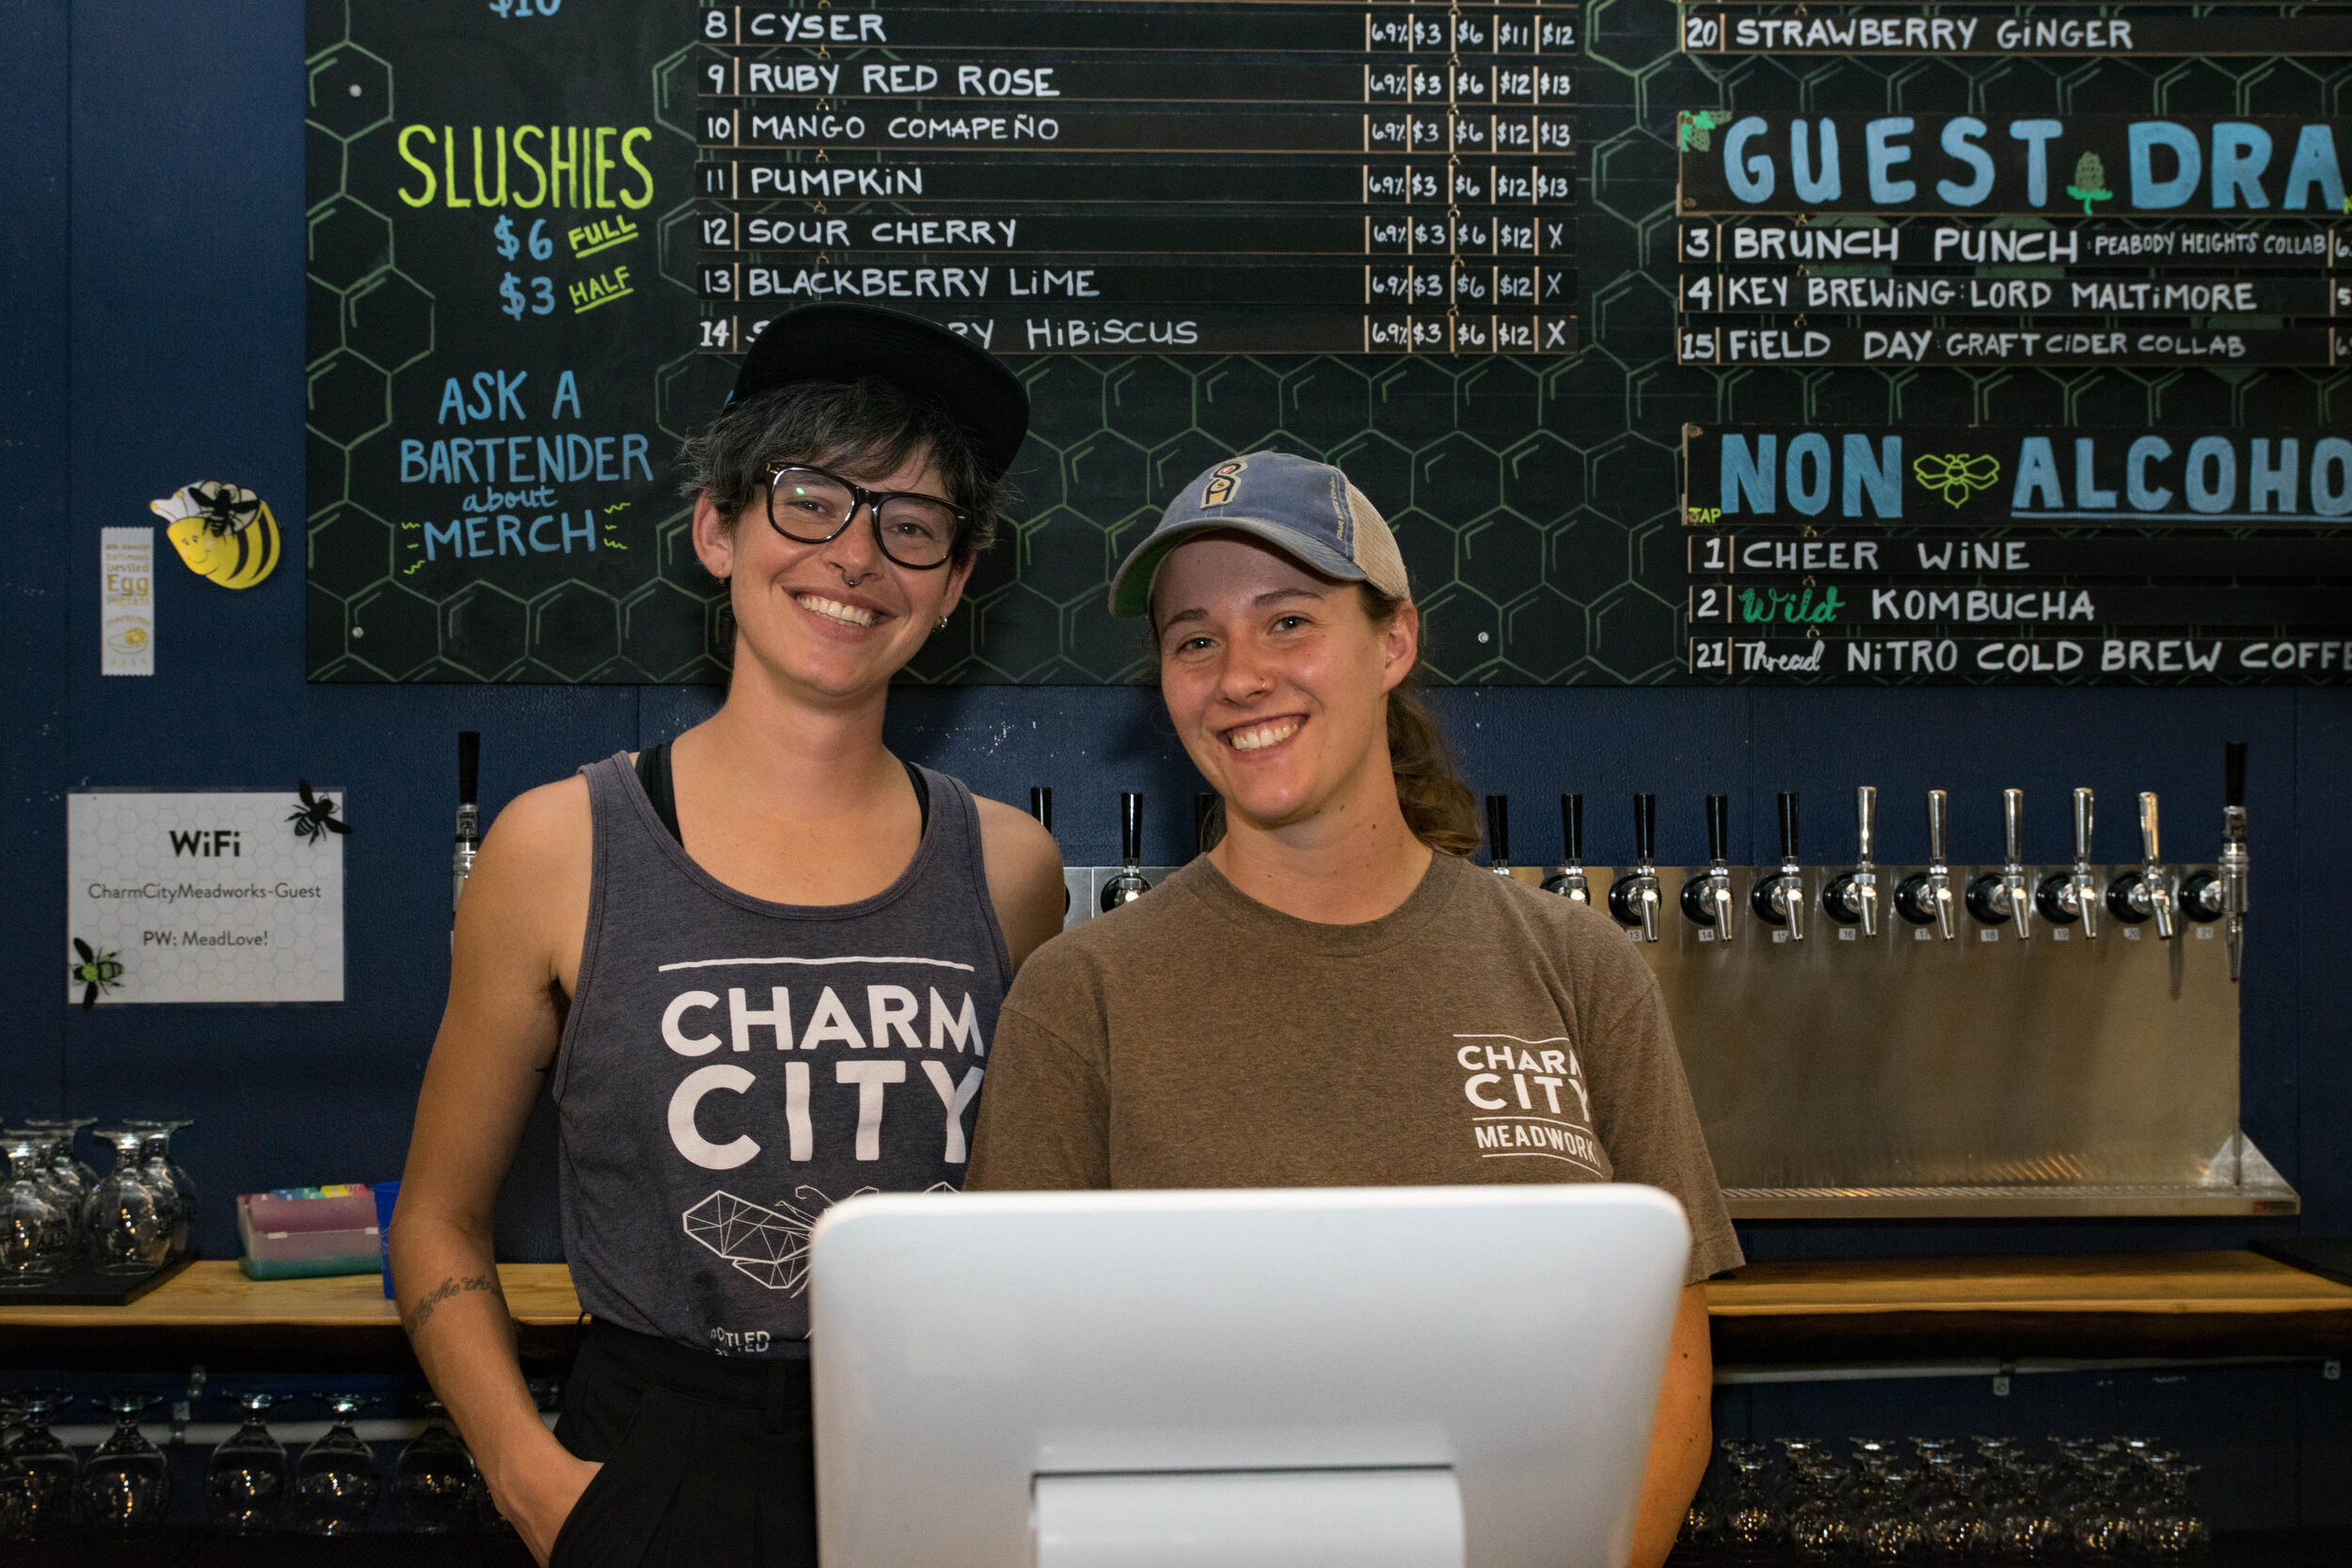 Miriam Cummons and Charm City Meadworks staff